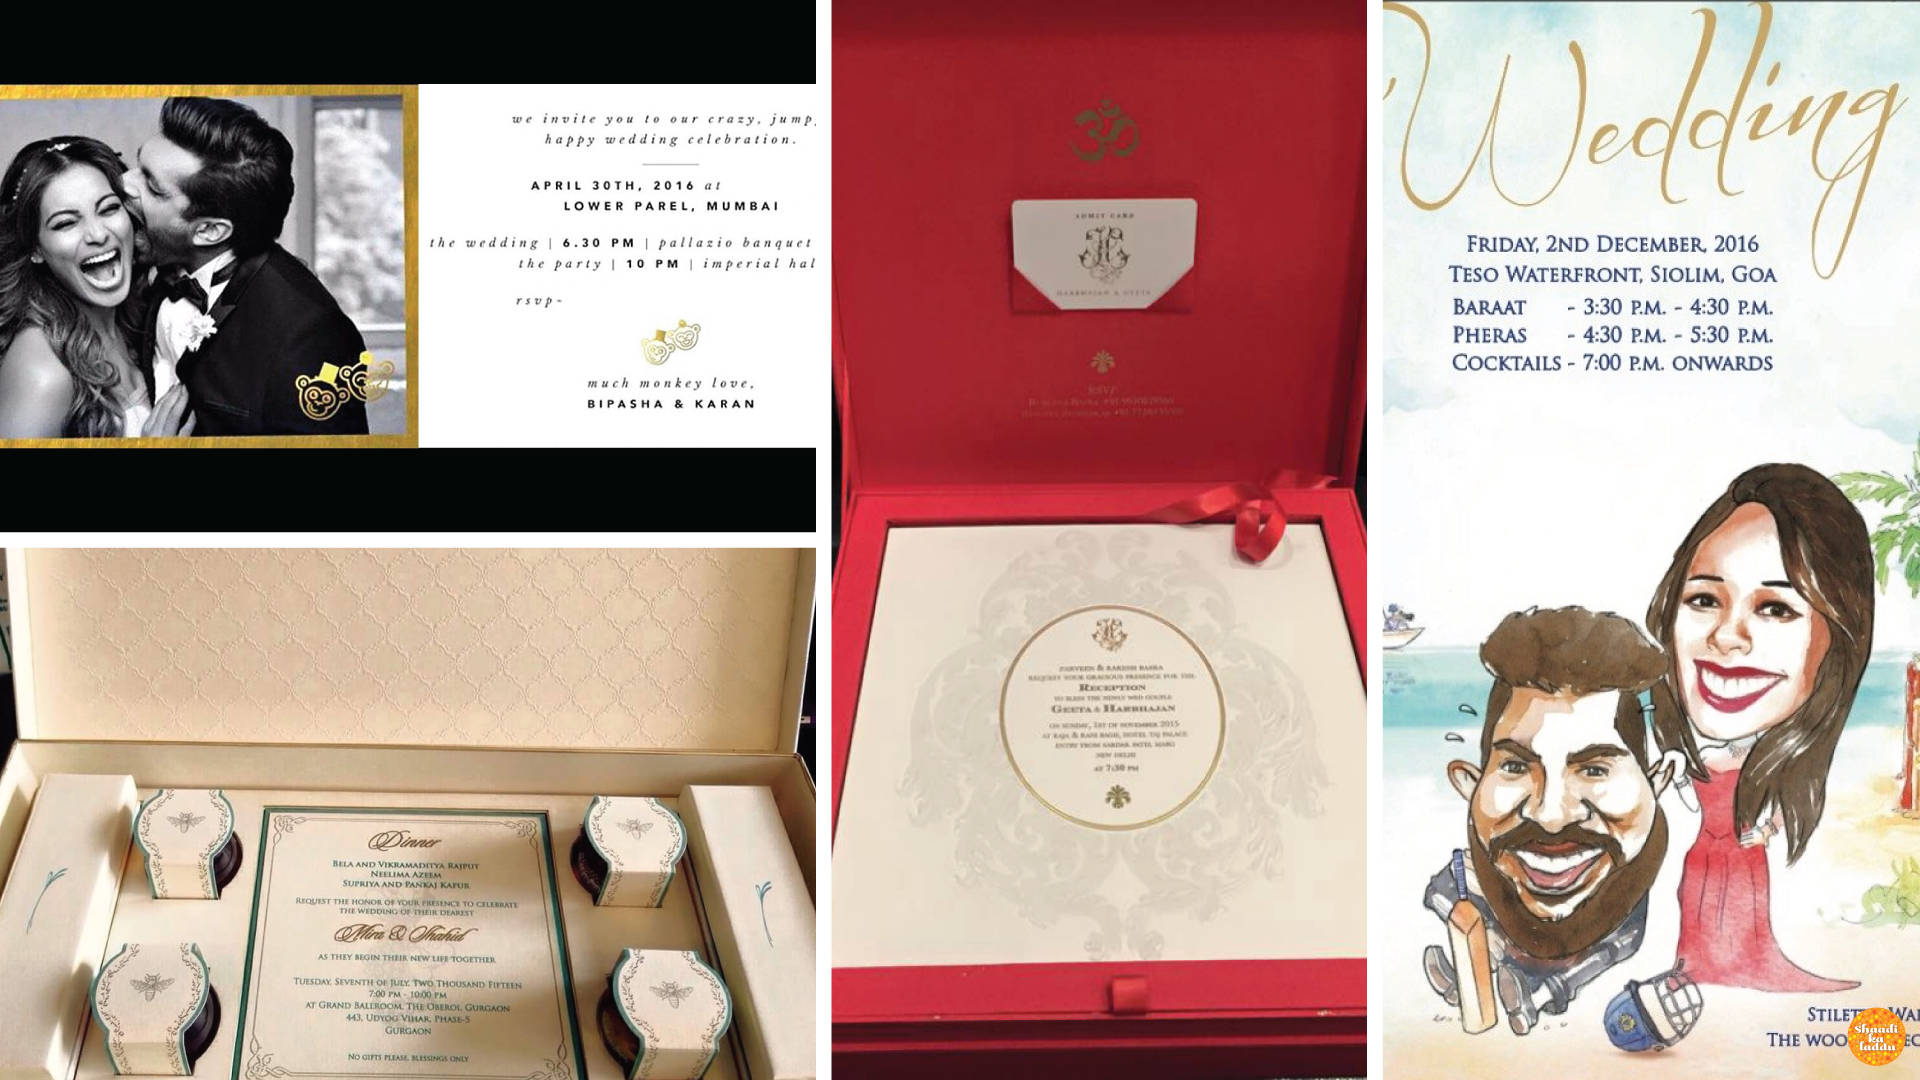 Celebrity Wedding Invitations stealing the show.